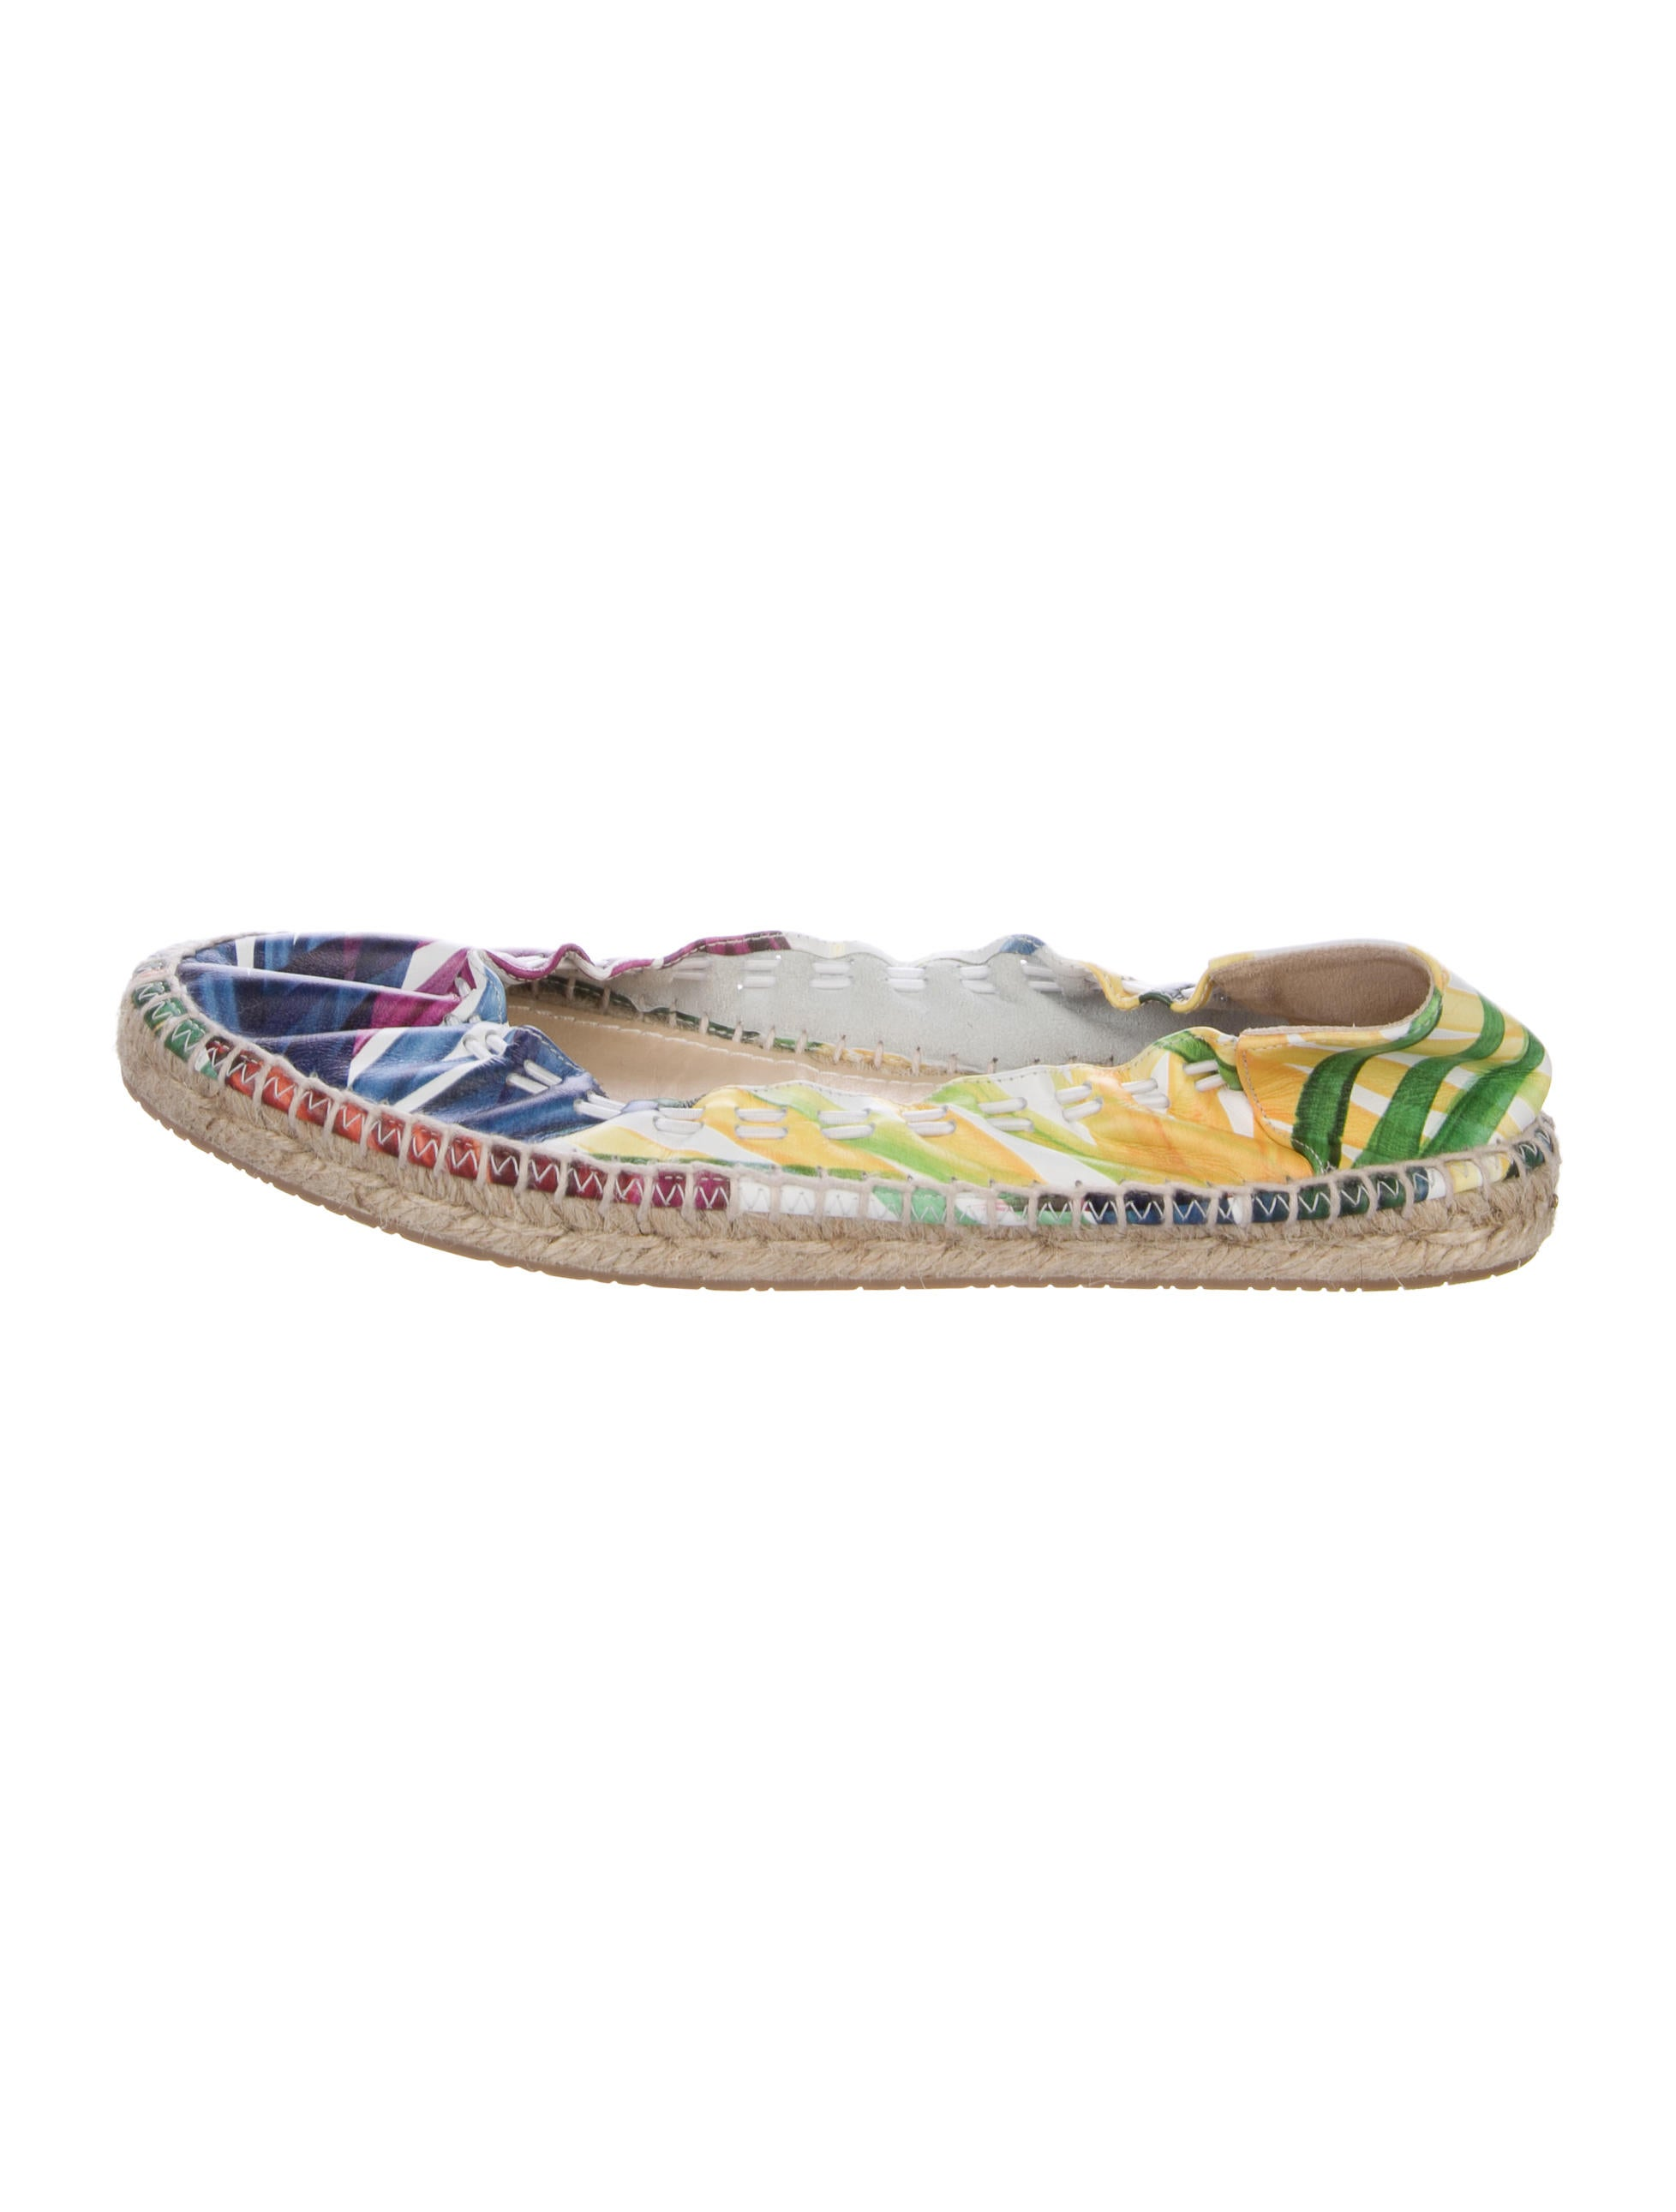 collections for sale Jimmy Choo Deena Leather Espadrilles w/ Tags under $60 for sale jgtF8